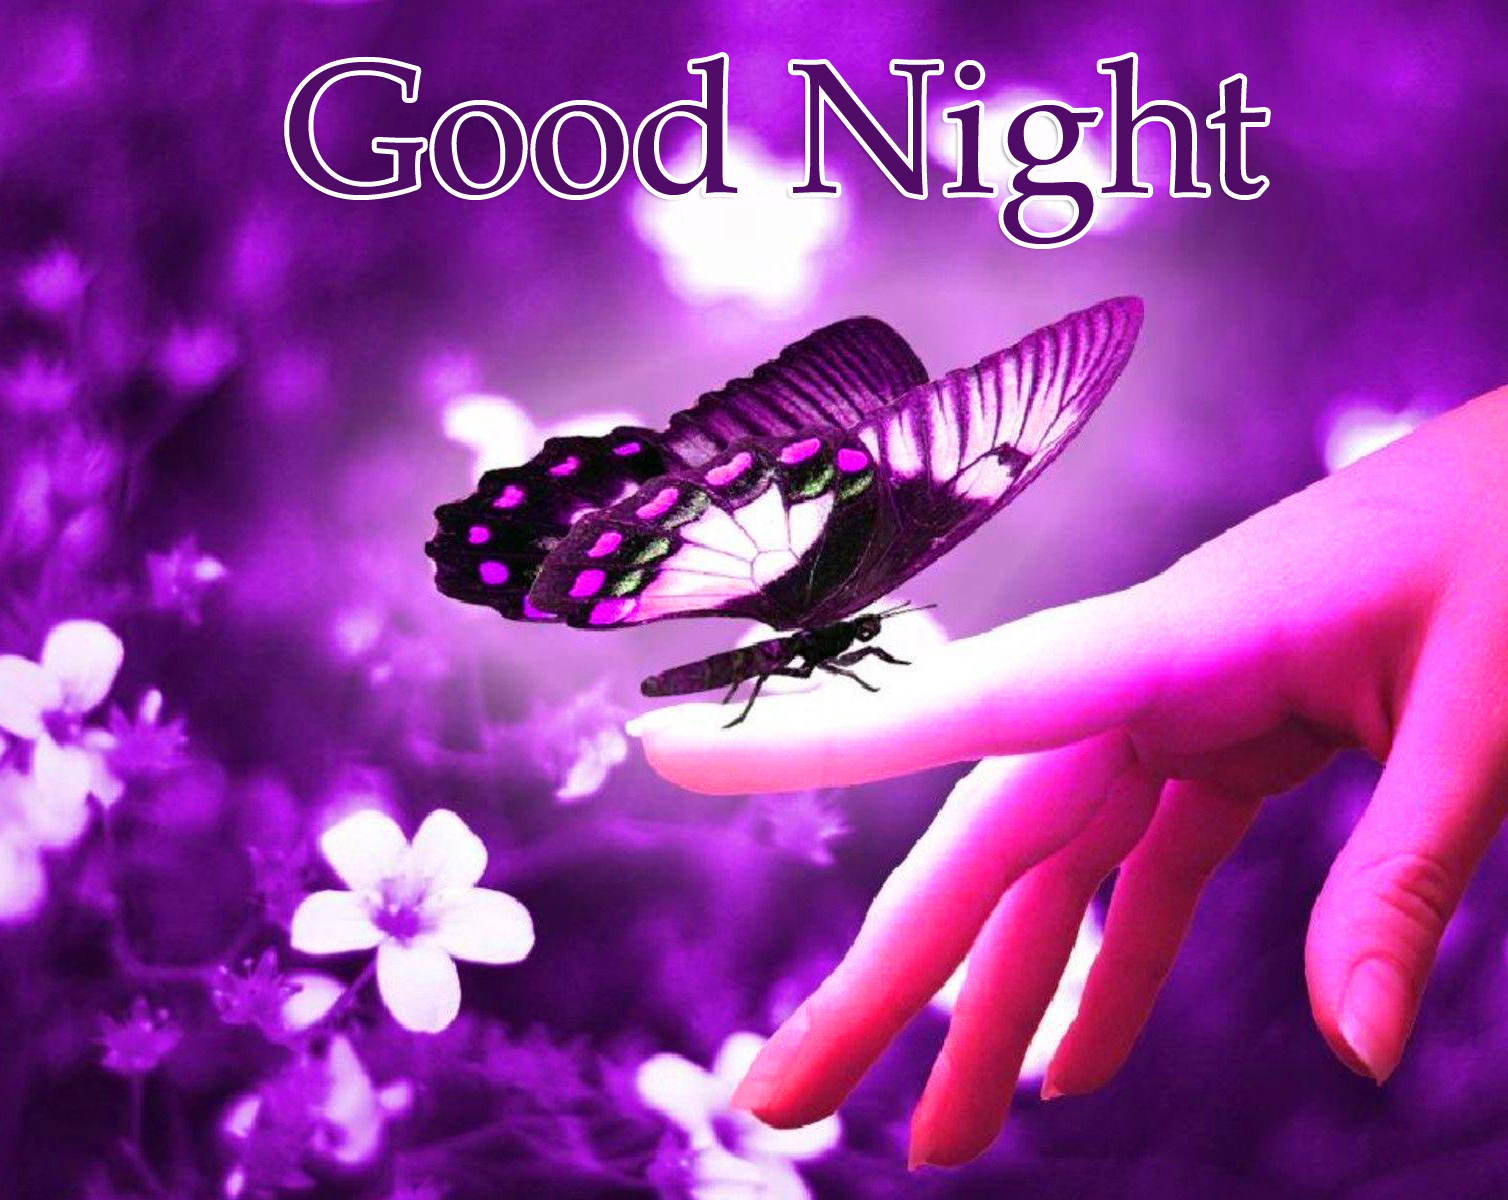 Good Night Purple Butterfly and Floral Wallpaper